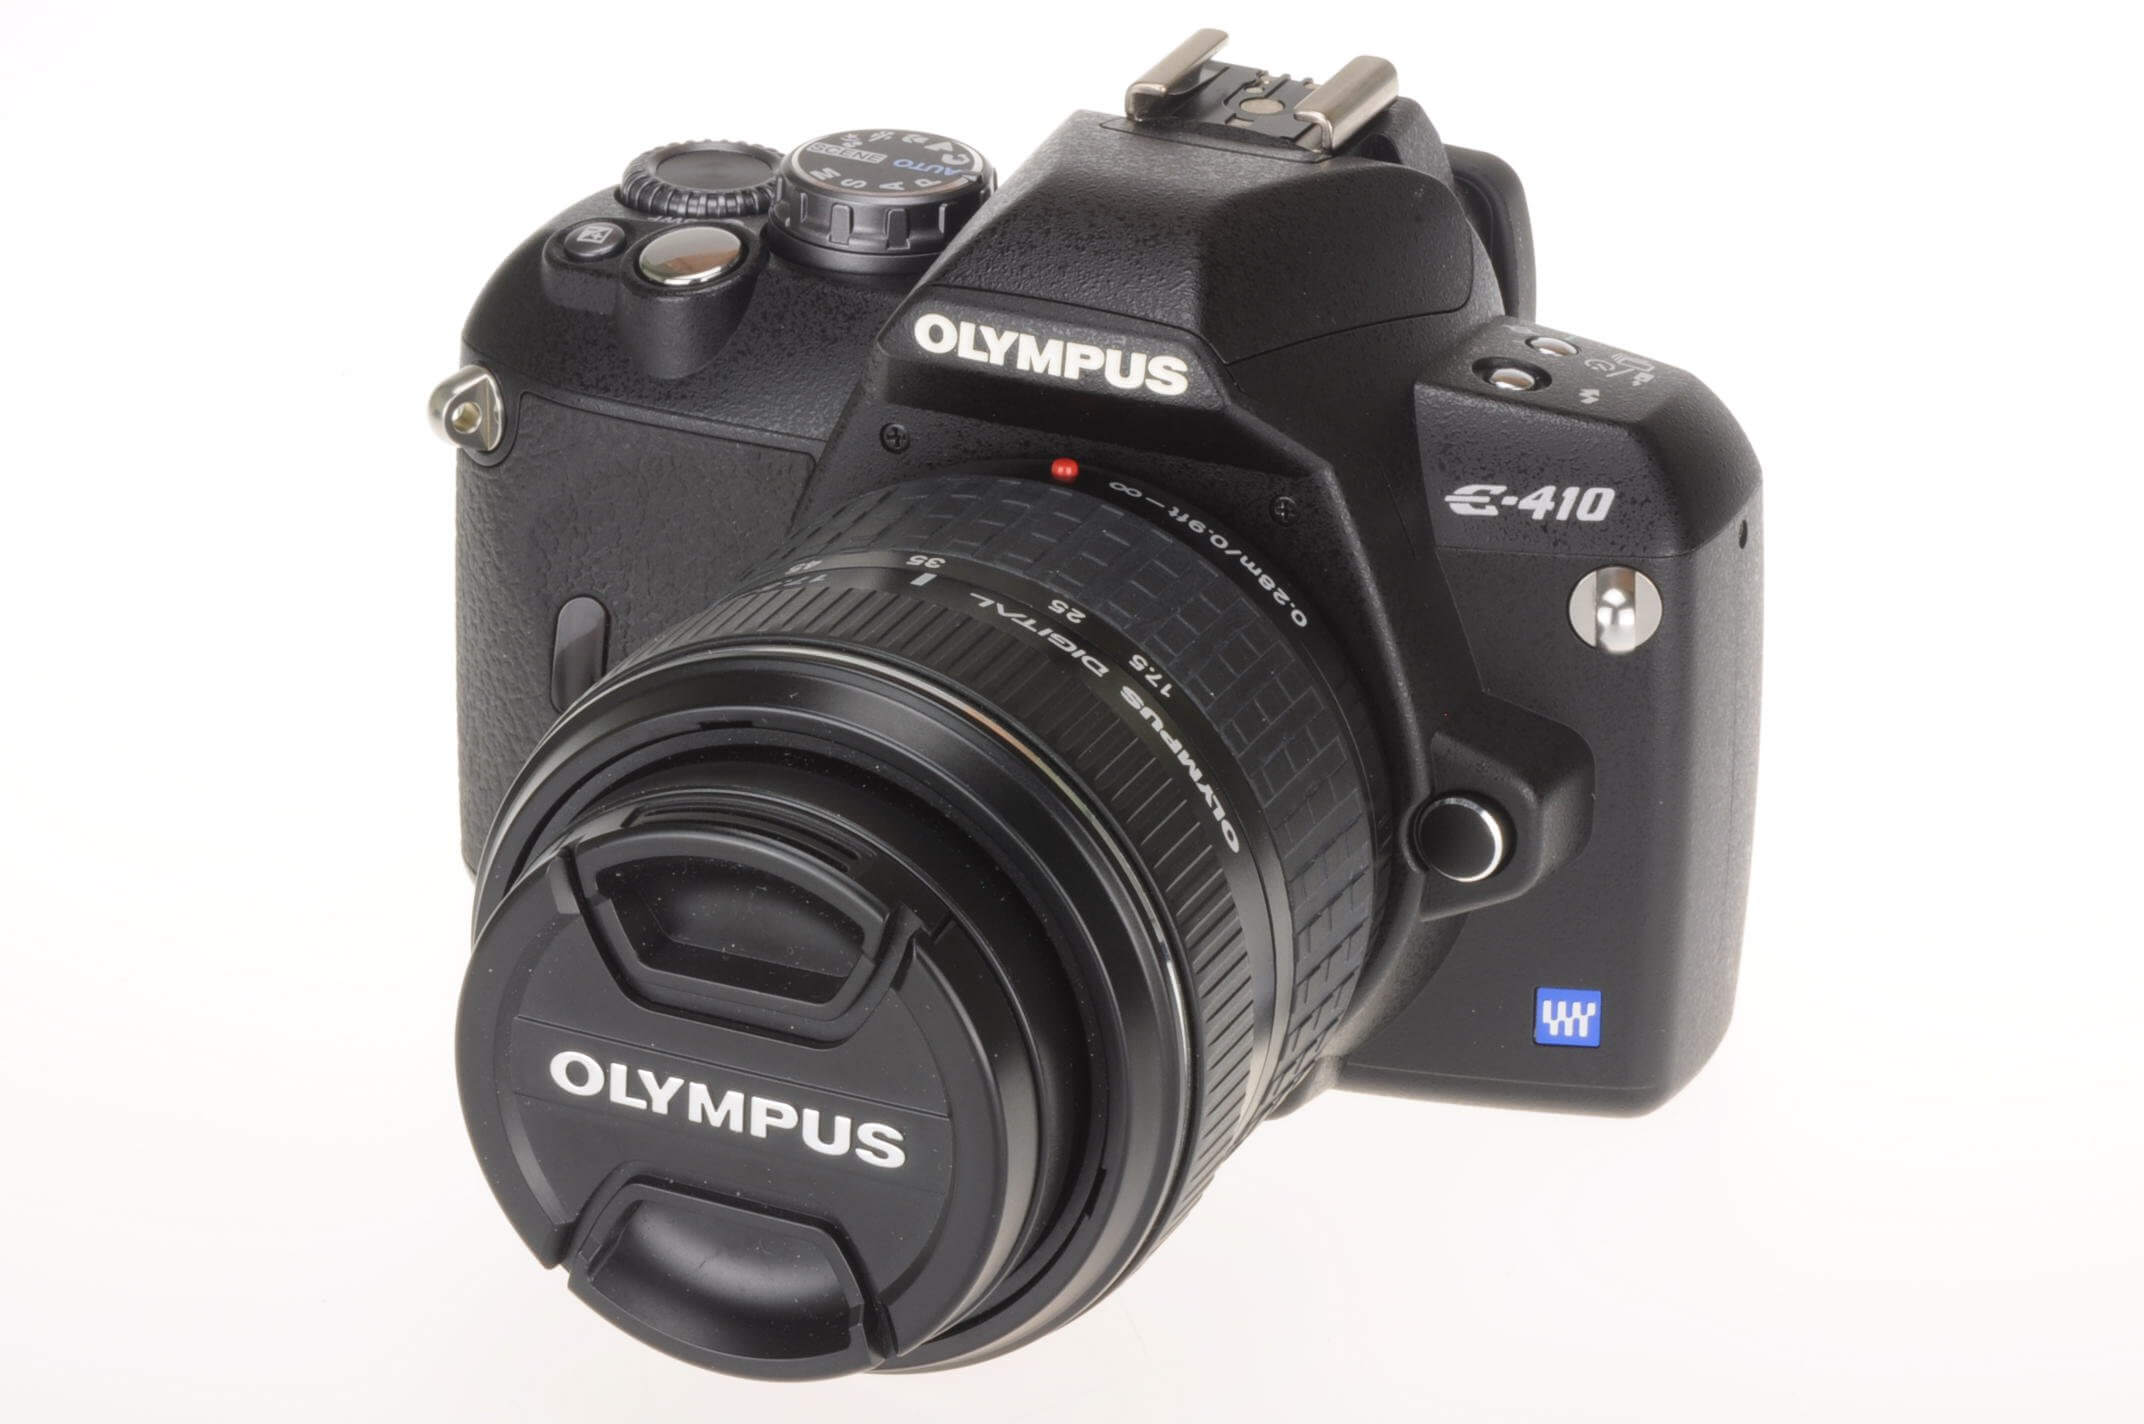 Olympus E410 with 17.5-45mm lens, only 768 actuations!